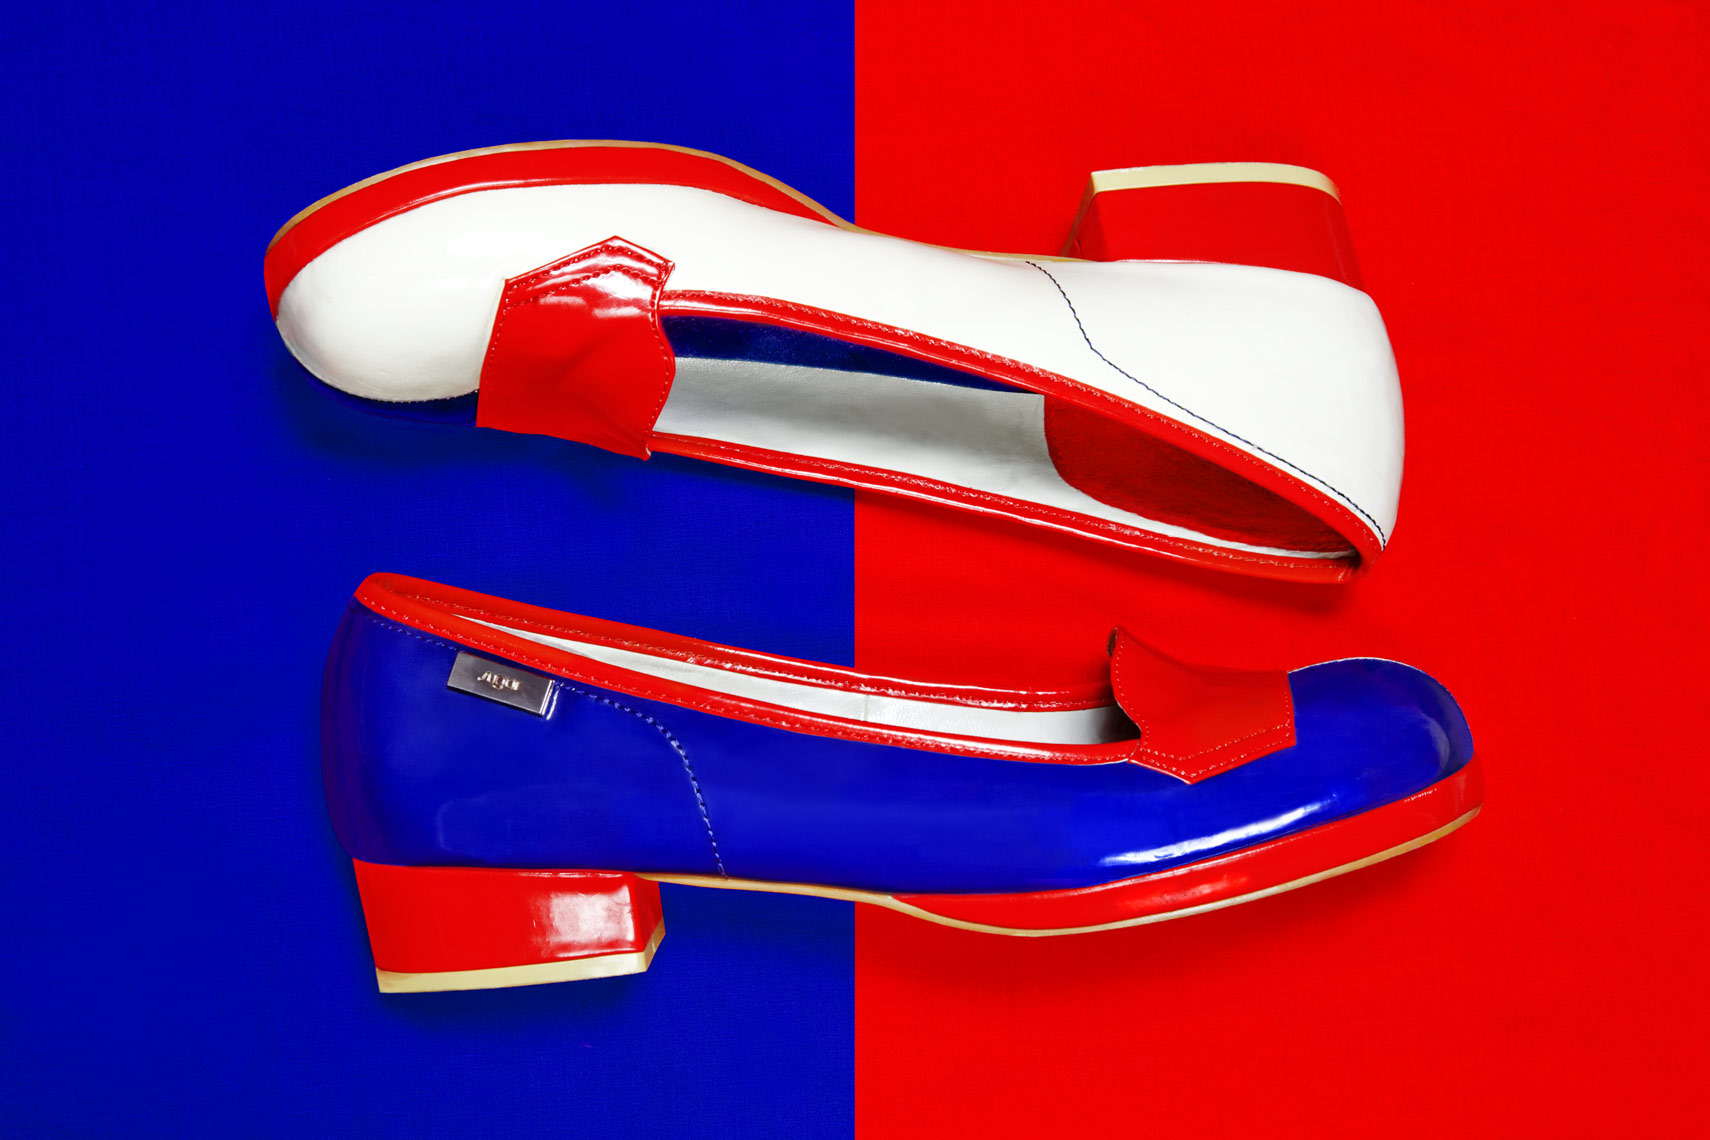 REDBLUE_SHOE_001webres